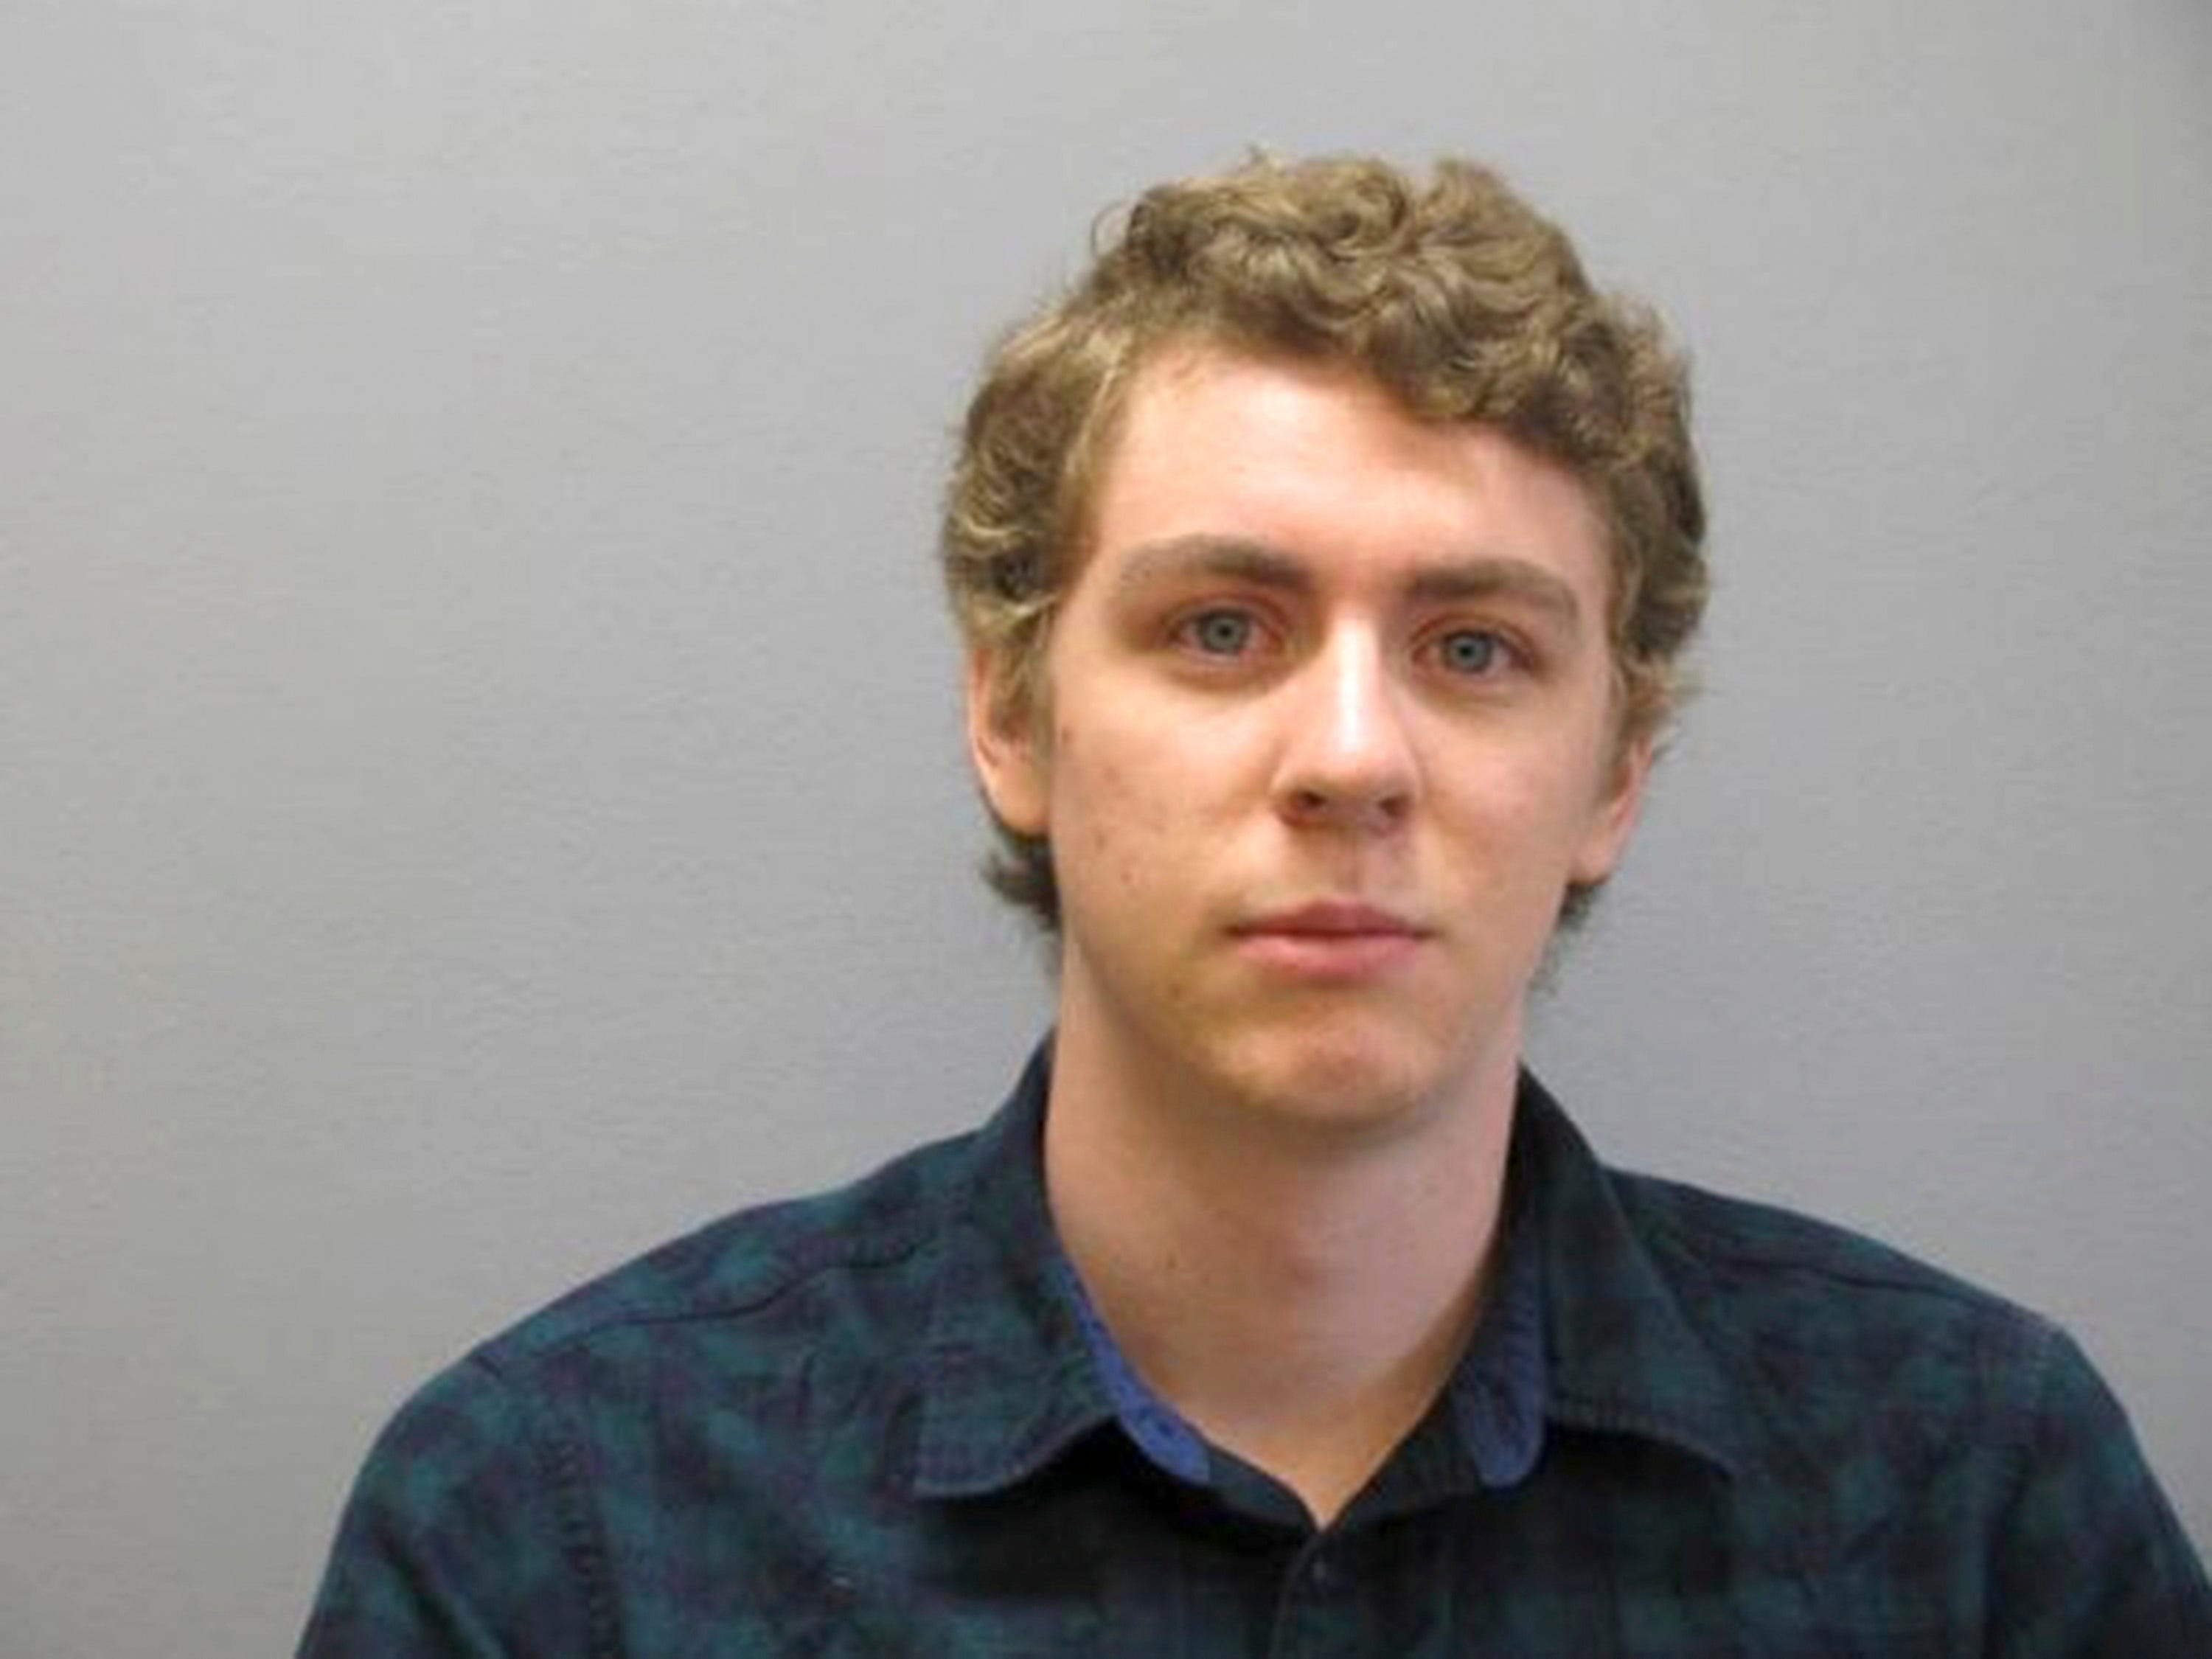 Stanford University swimmer convicted of assault denied new trial